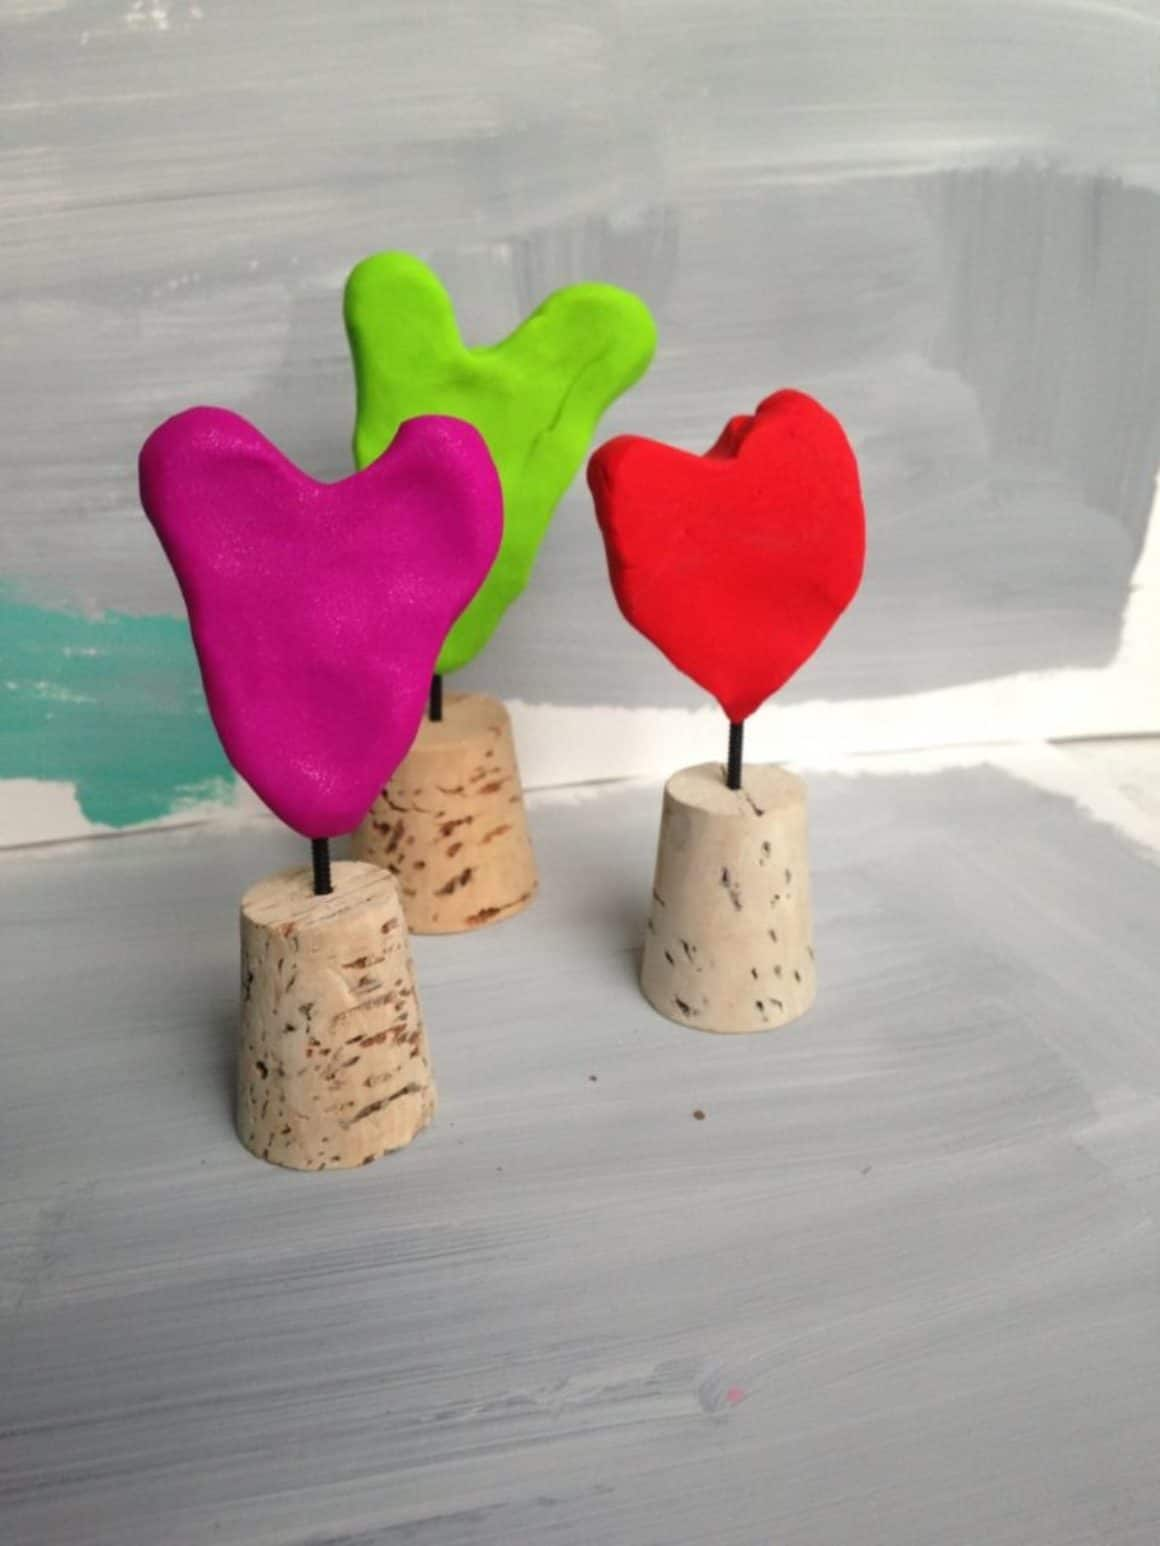 mini heart sculptures for Valentine